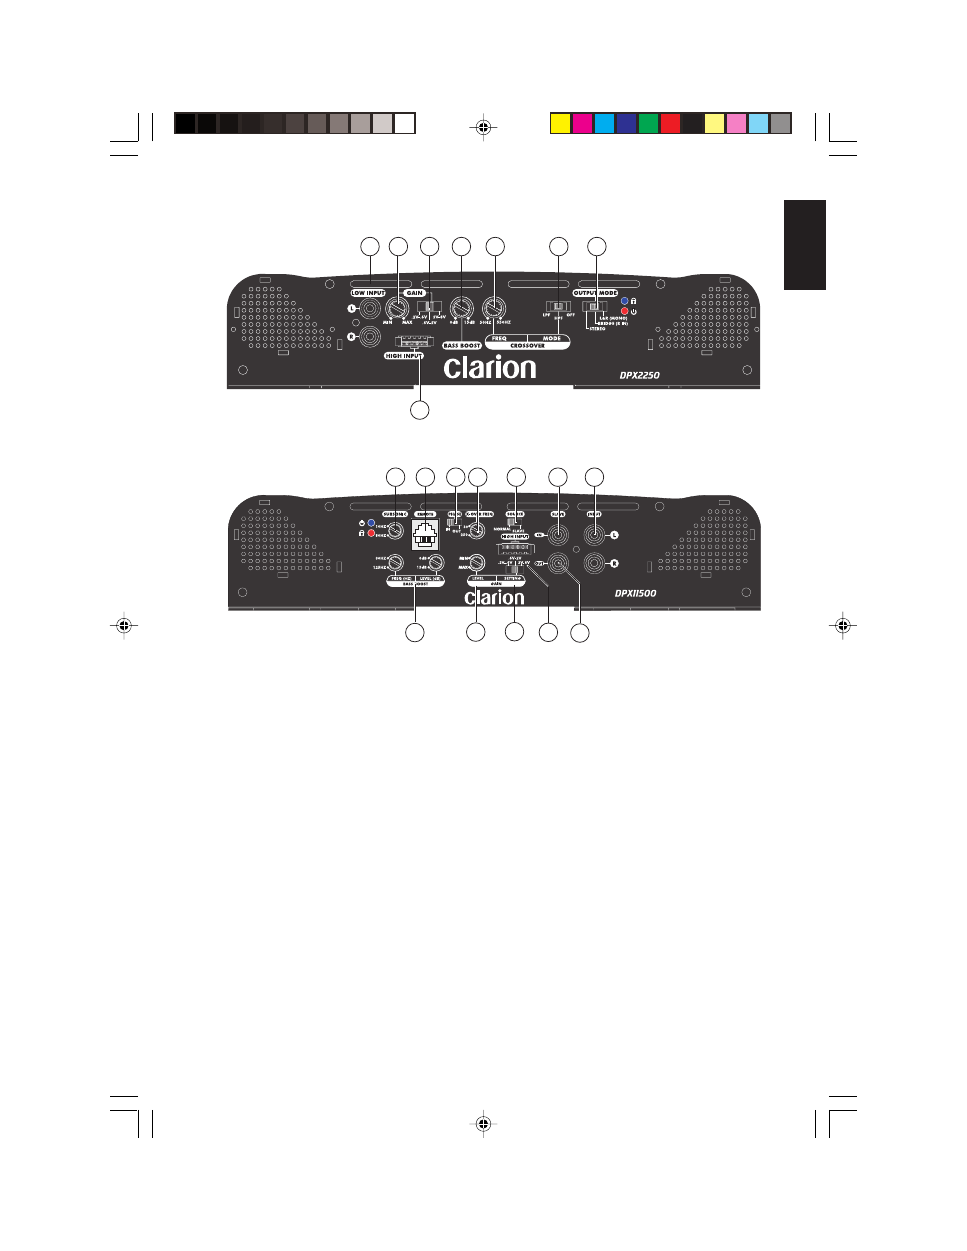 Clarion M5475 Wiring Diagram Rc Schematics Data Nx409 Color For Drb2475 Page 2 And Sony Car Cd Player